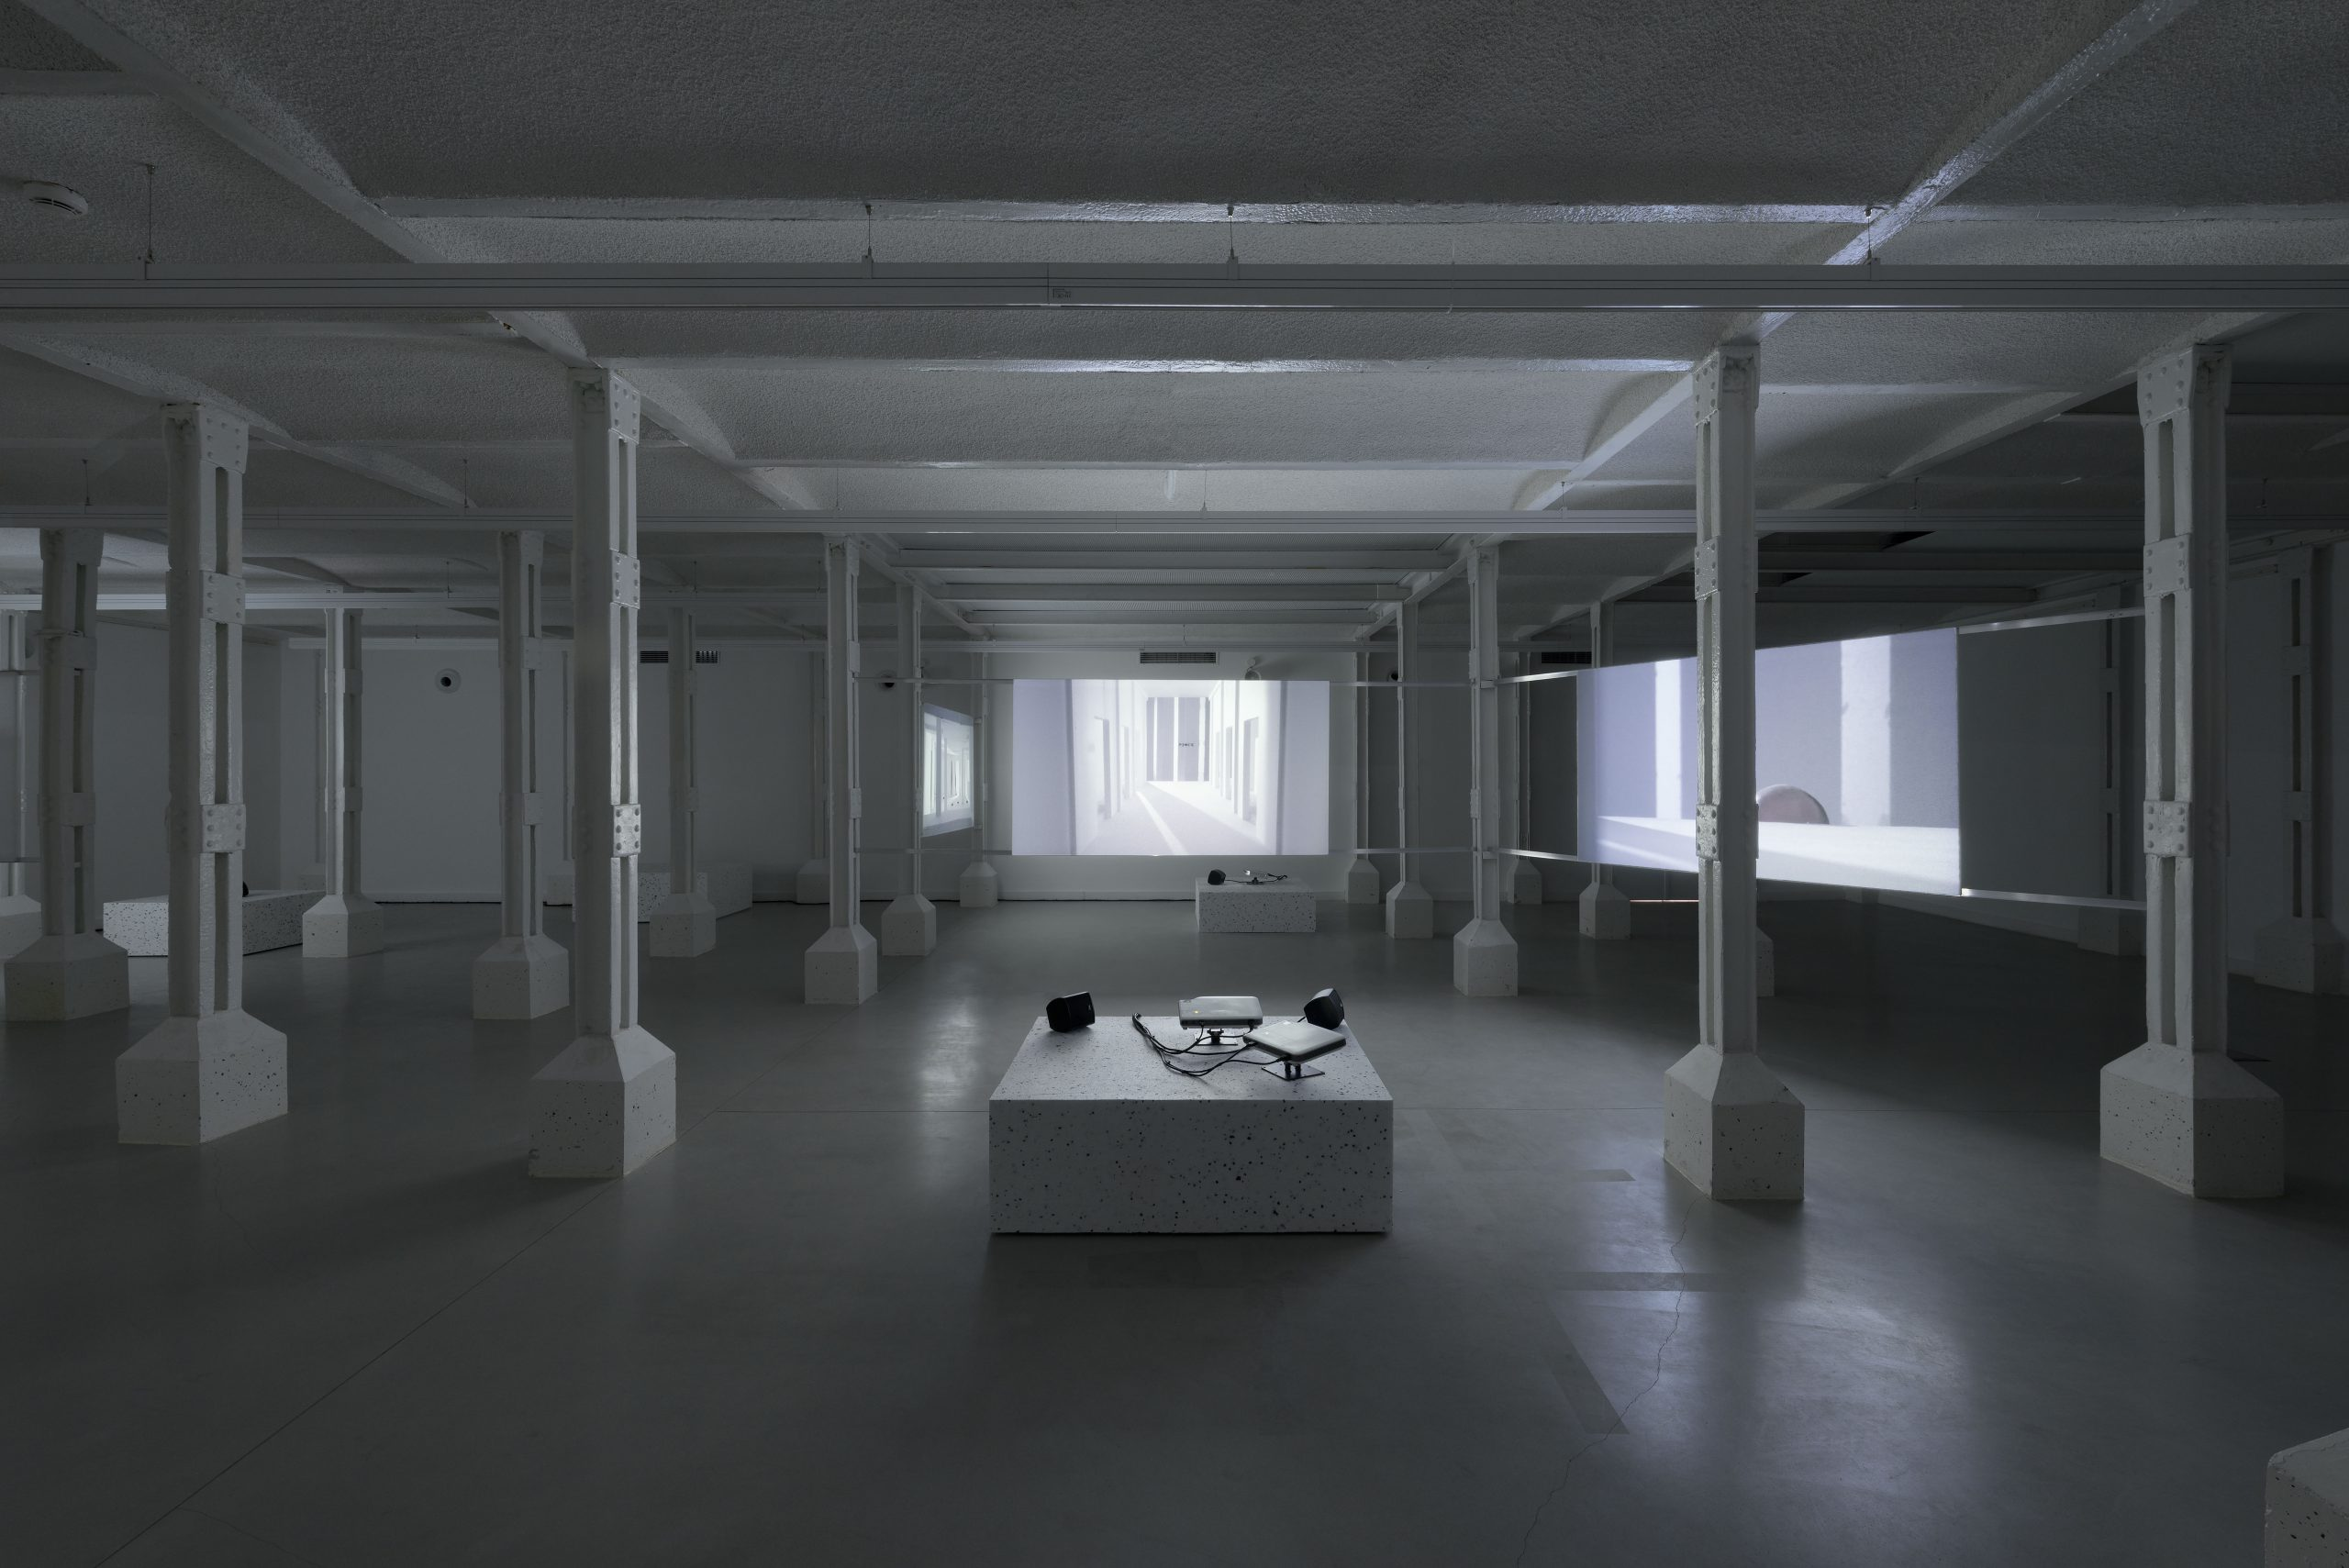 Gilad Ratman, Four Works, installation view at Trafo, 2015